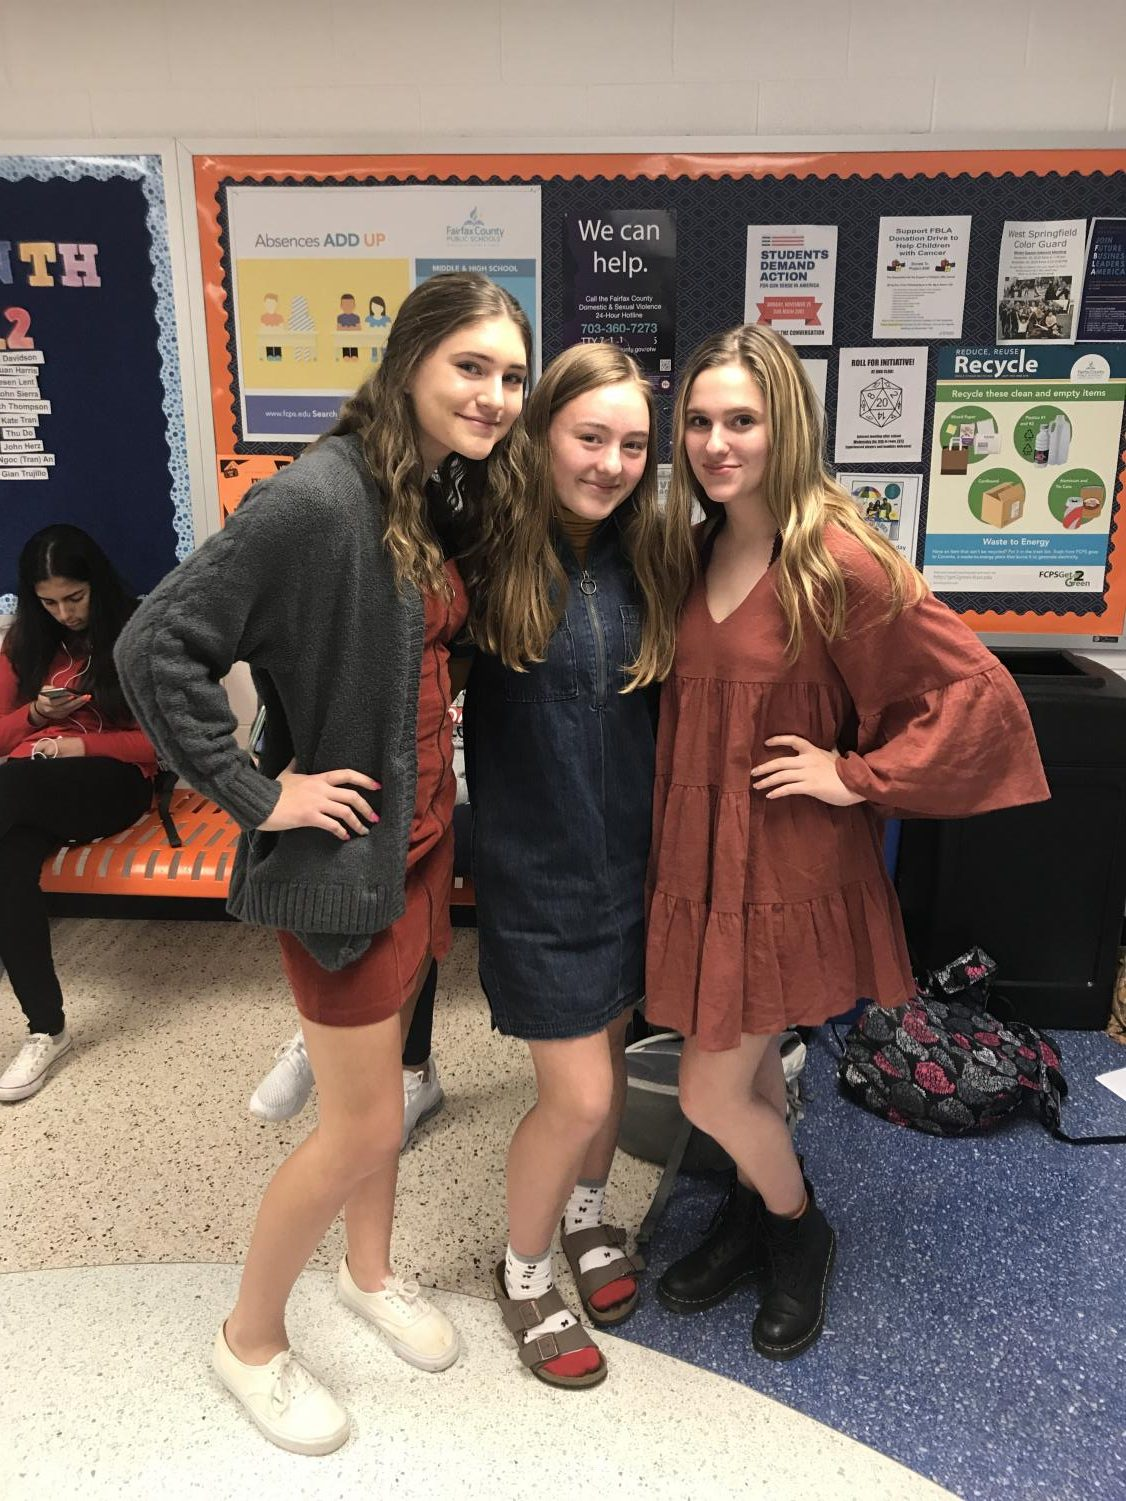 Freshmen Emma Jury, Nora Hennessy, and Helen Phillips wearing dresses to help end human trafficking in society.